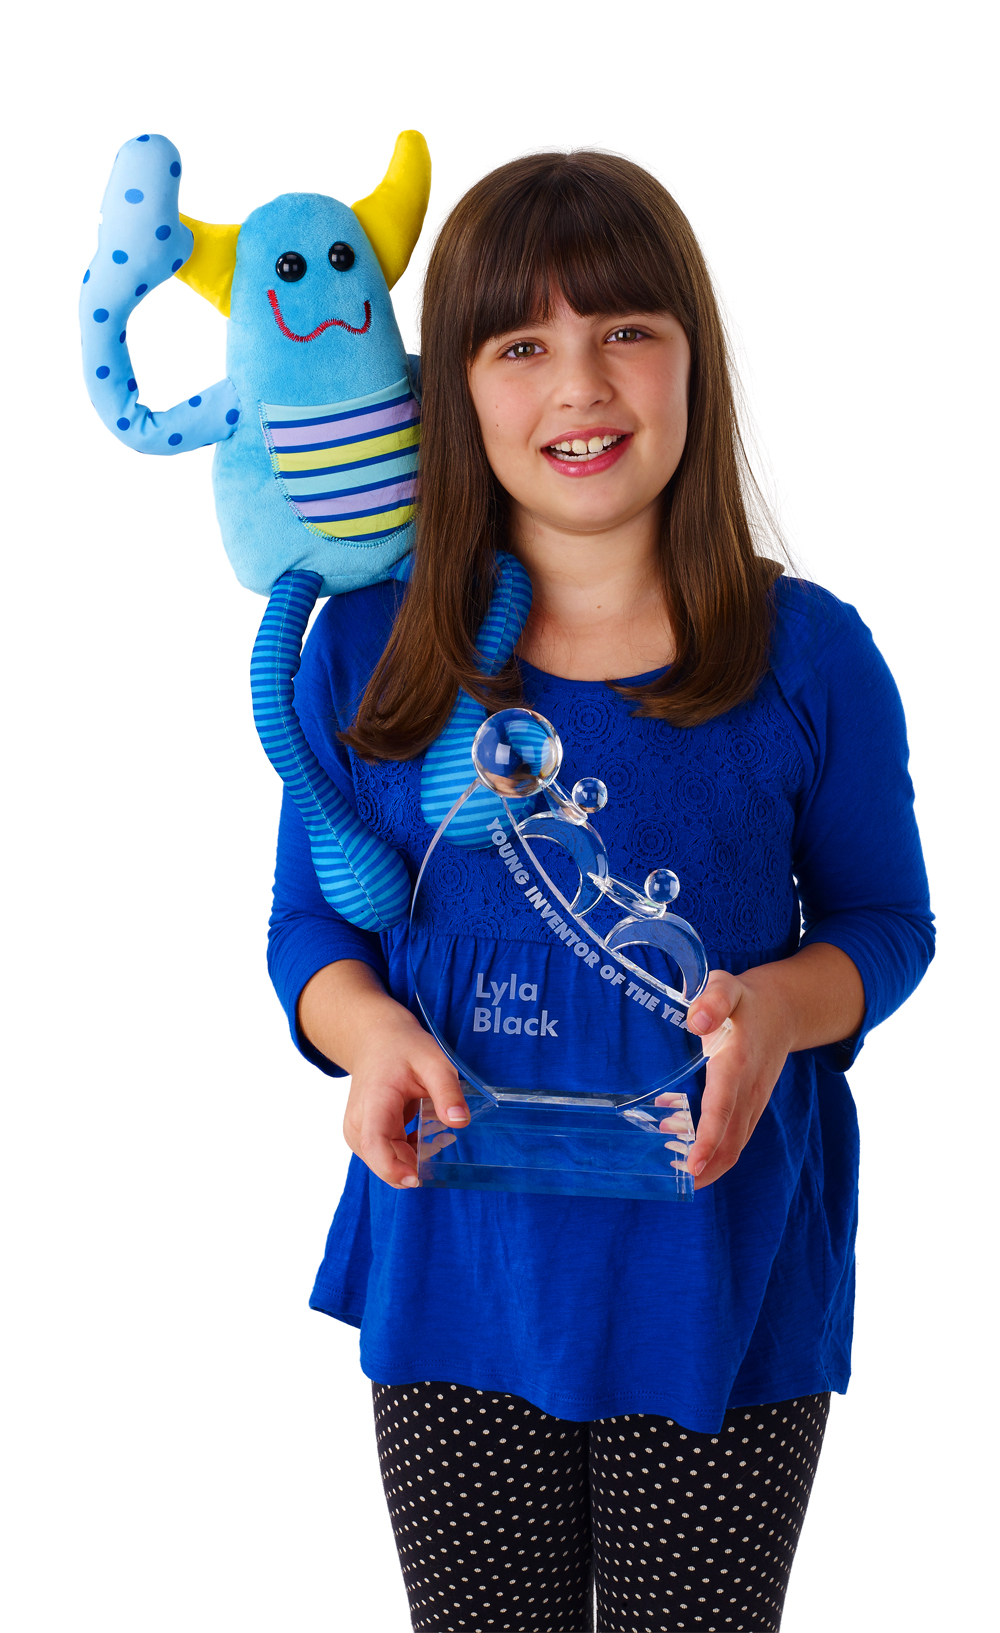 Lyla Black from Lyla Tov Monsters standing with award